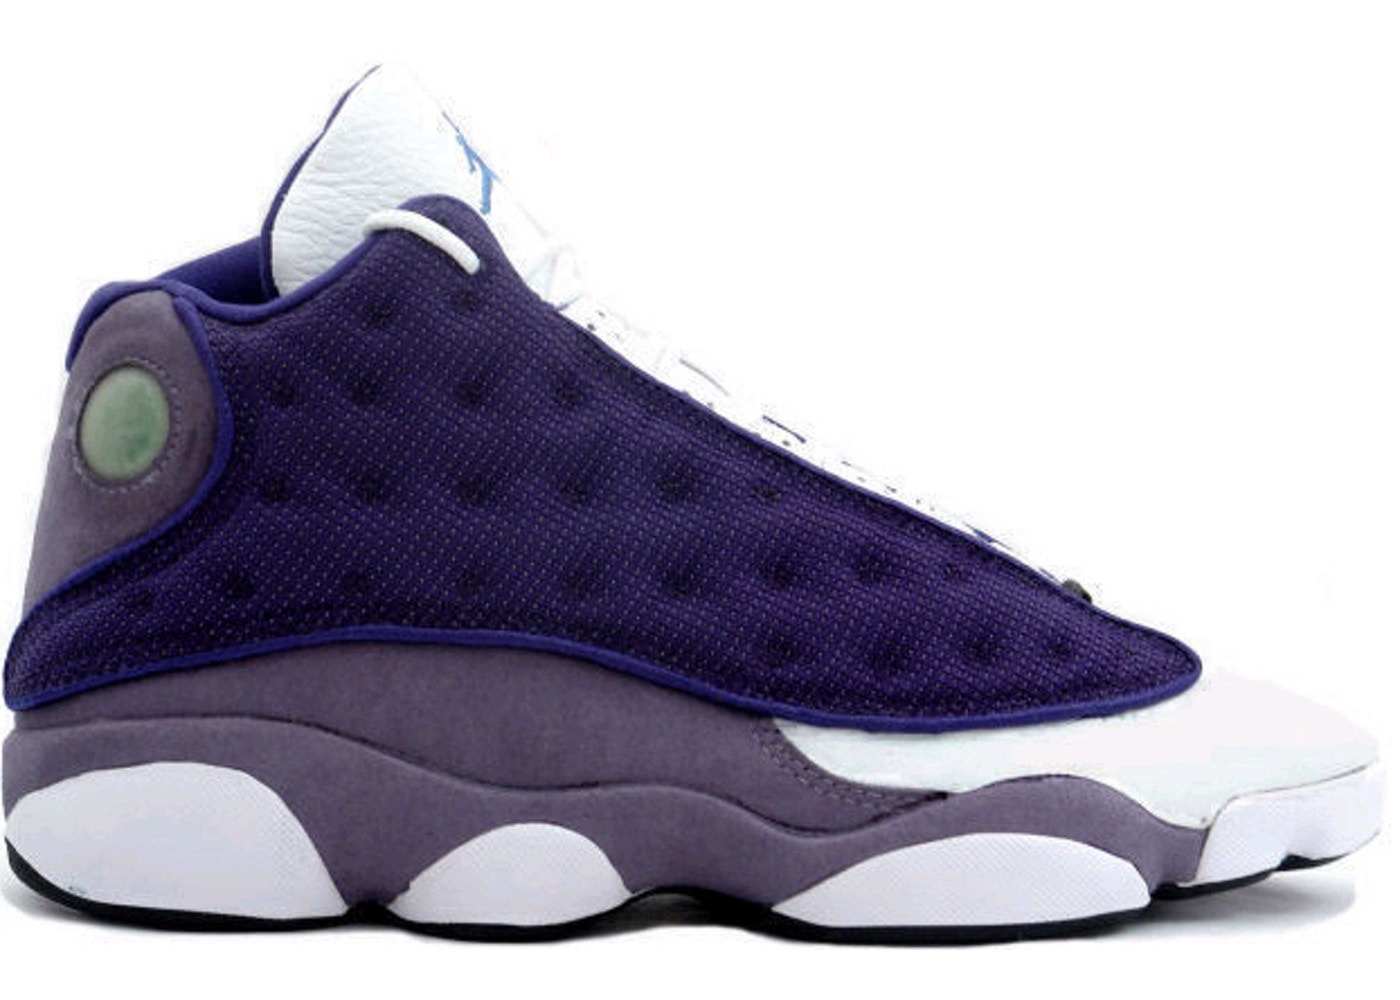 best sneakers d3b9d 32154 Jordan 13 OG Flint (1997)